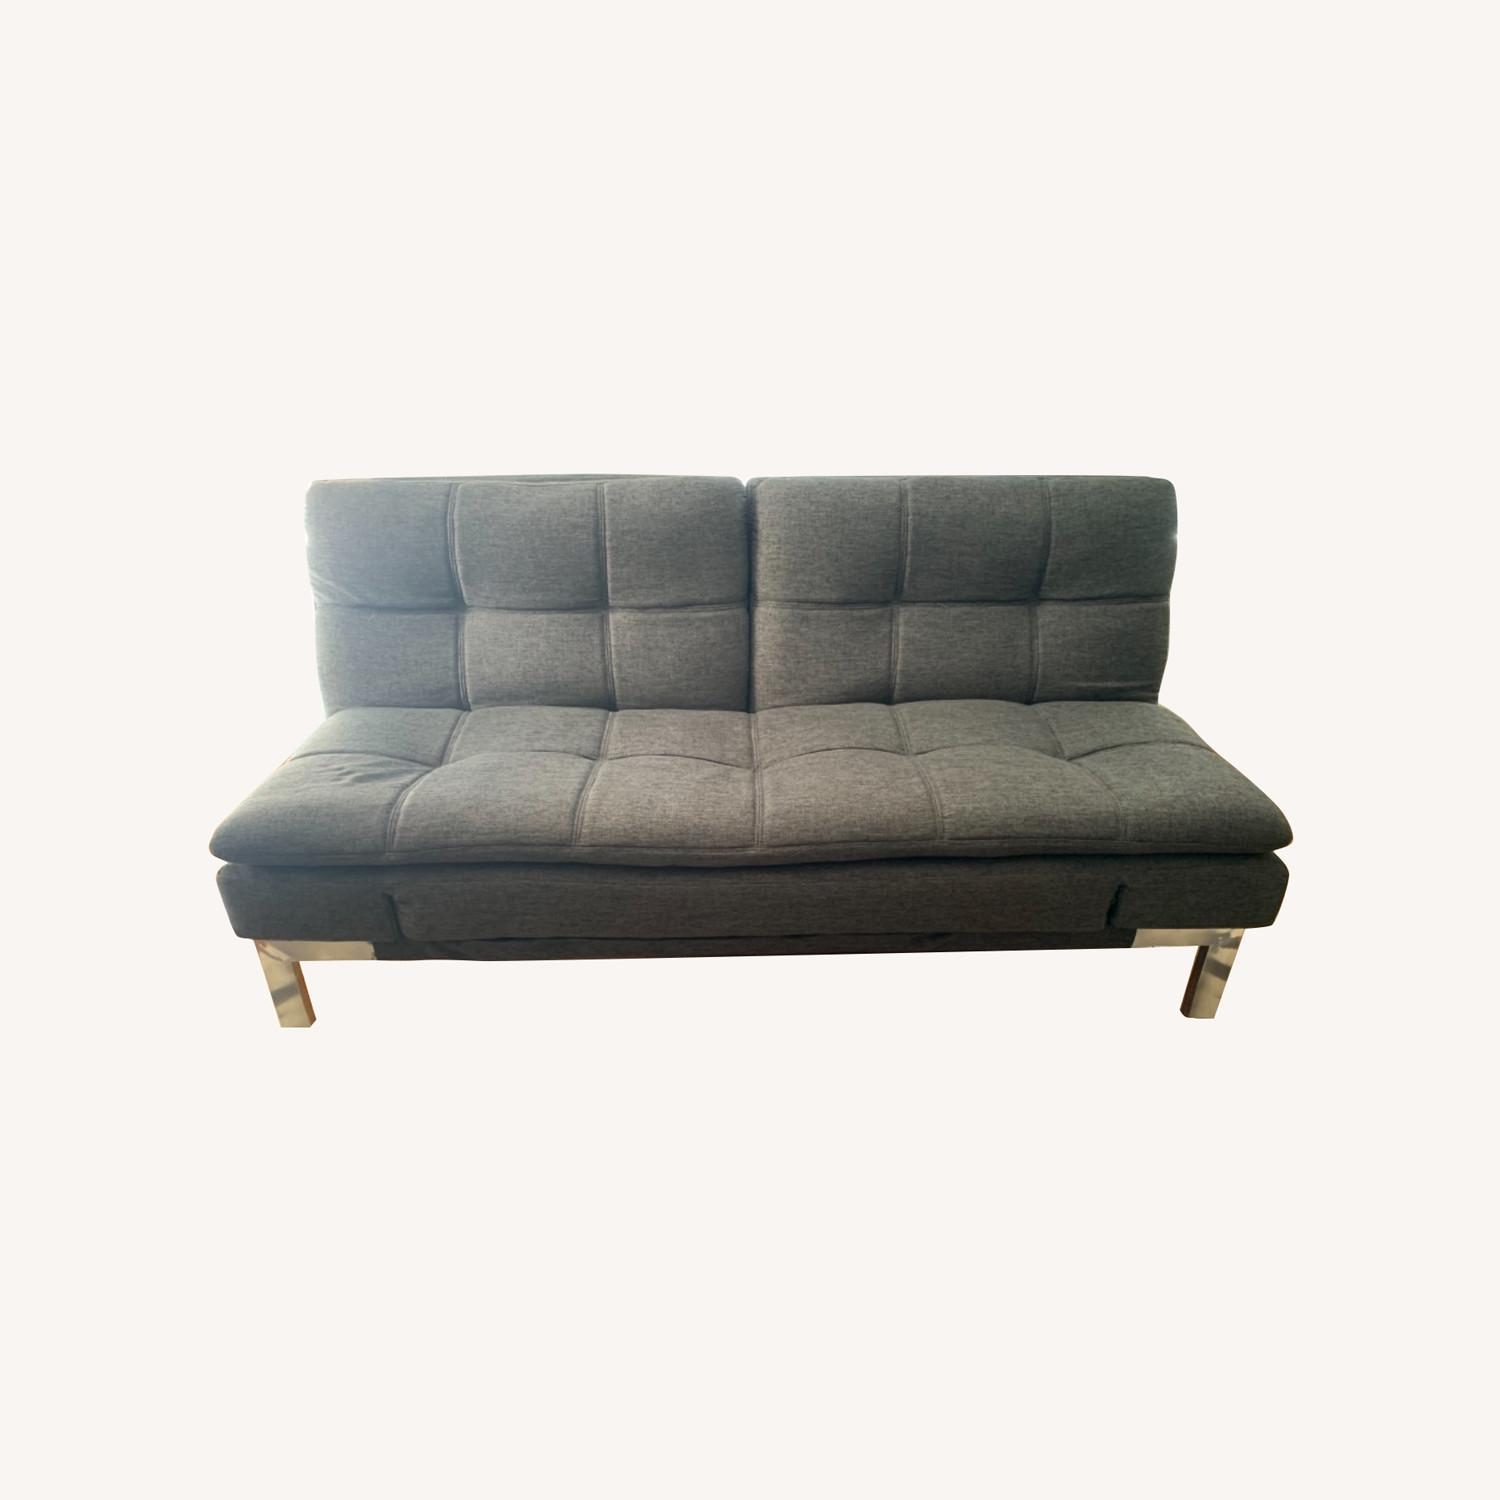 Slate gray futon with Serta Mattress Top - image-0